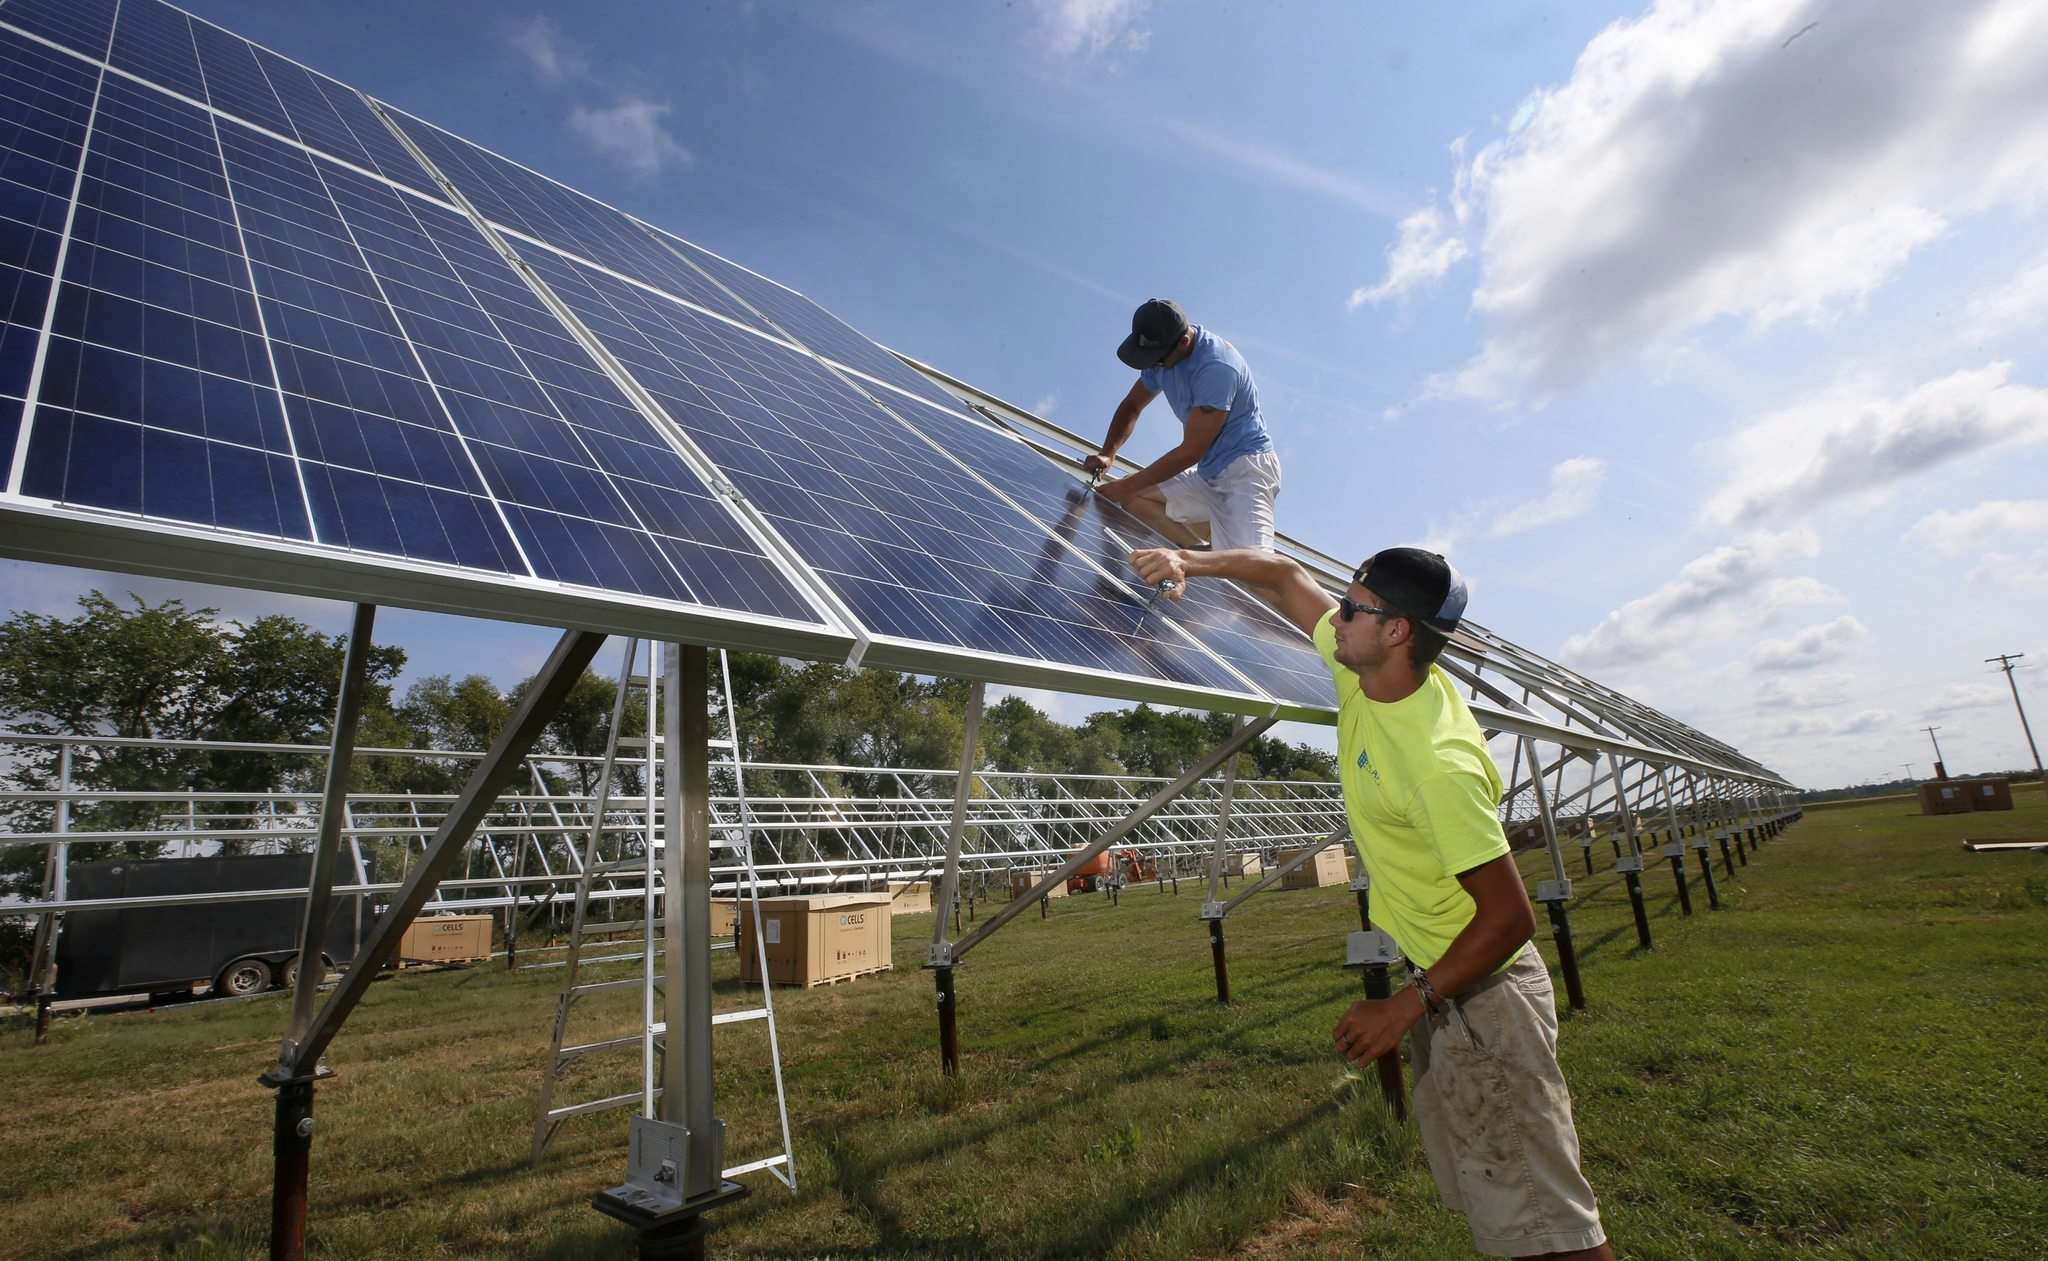 WAYNE GLOWACKI / WINNIPEG FREE PRESS</p><p>Bradly Becker (in foreground) and Tyson Kadynuik place a solar panel on Hans Gorter&rsquo;s dairy farm near Otterburne, Man. Above left, the group shows off the size of the panels.</p>